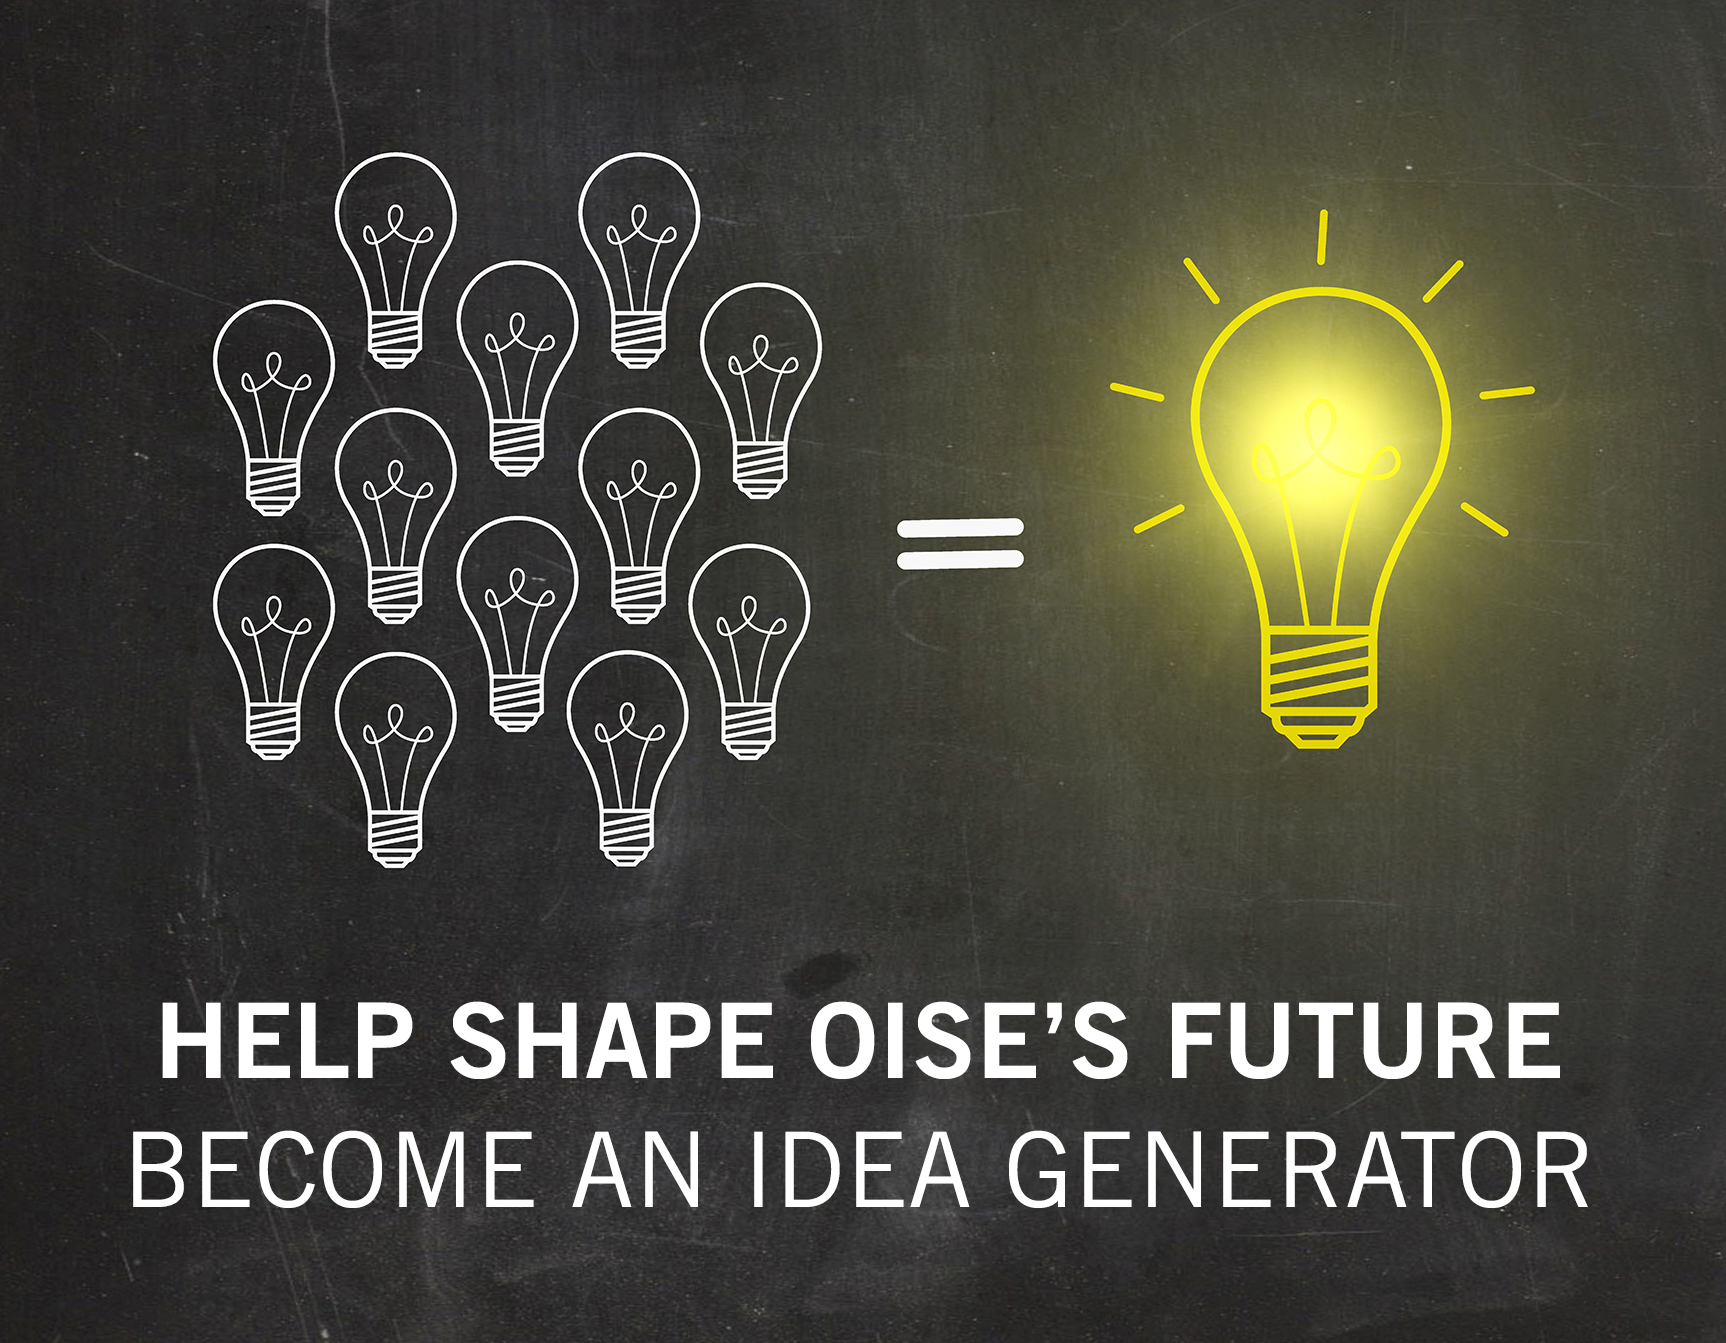 Be an idea generator to ensure OISE's best future